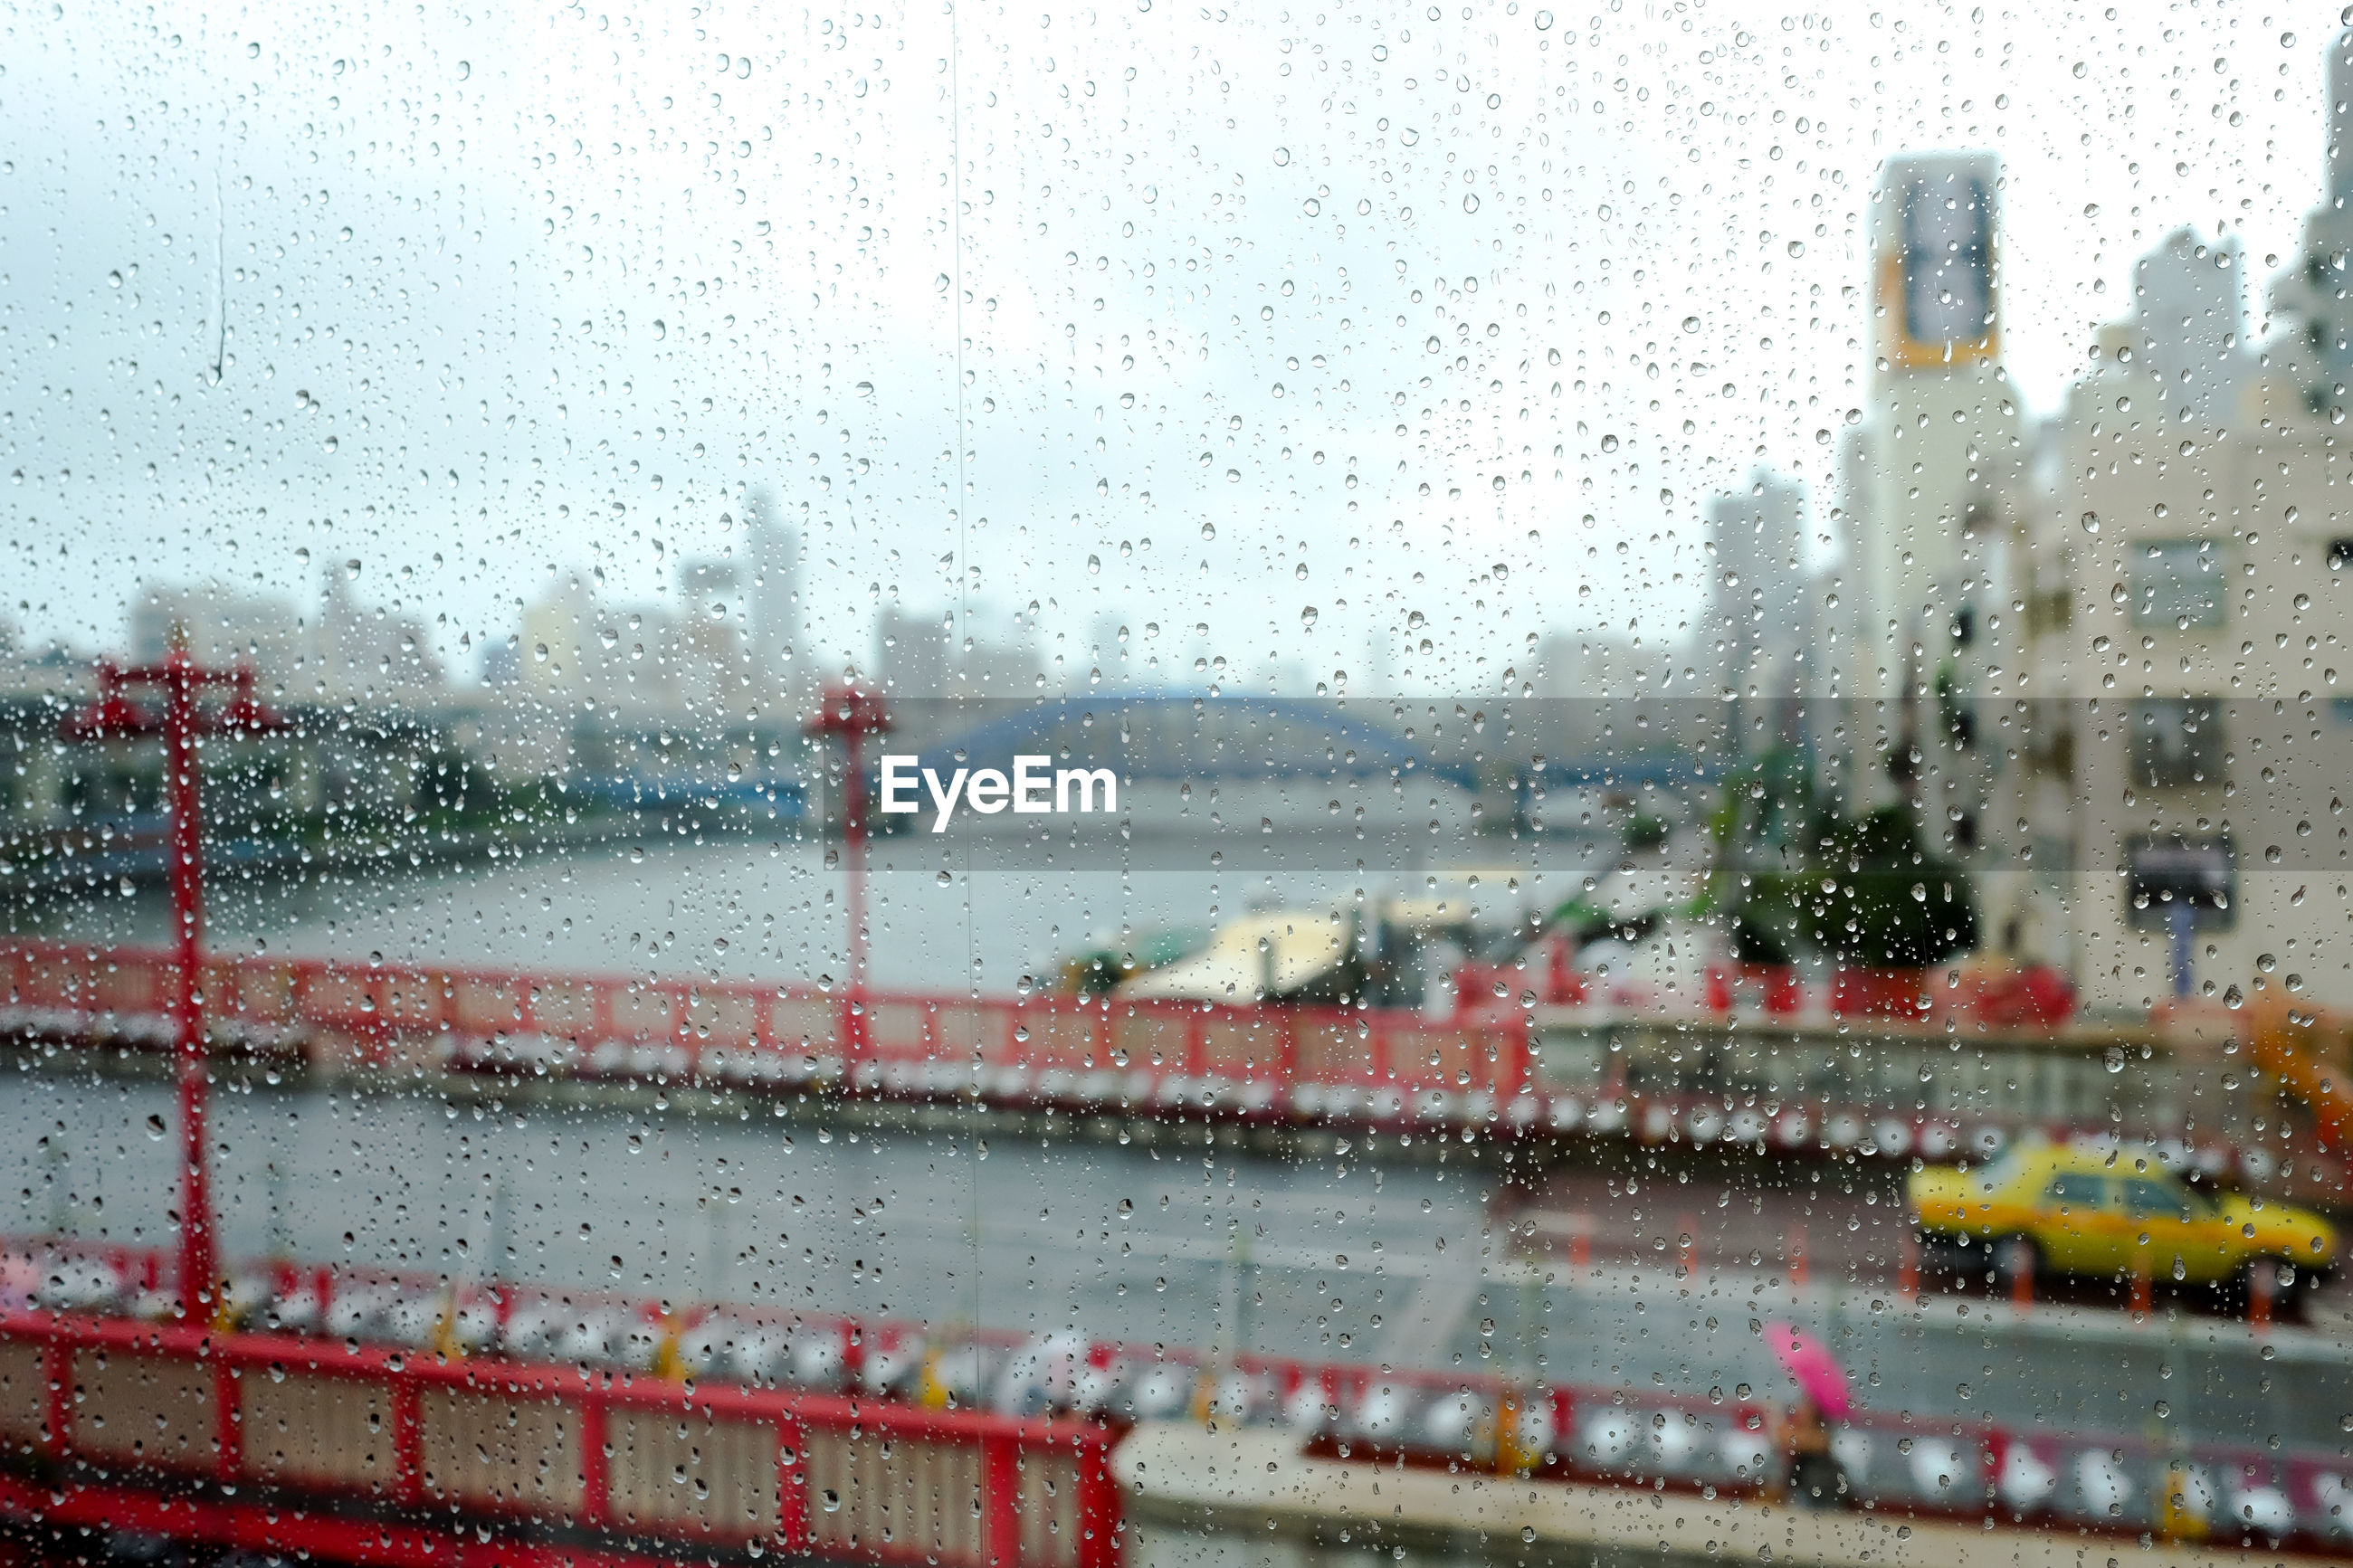 Bridge over river against sky seen from wet glass at asakusa